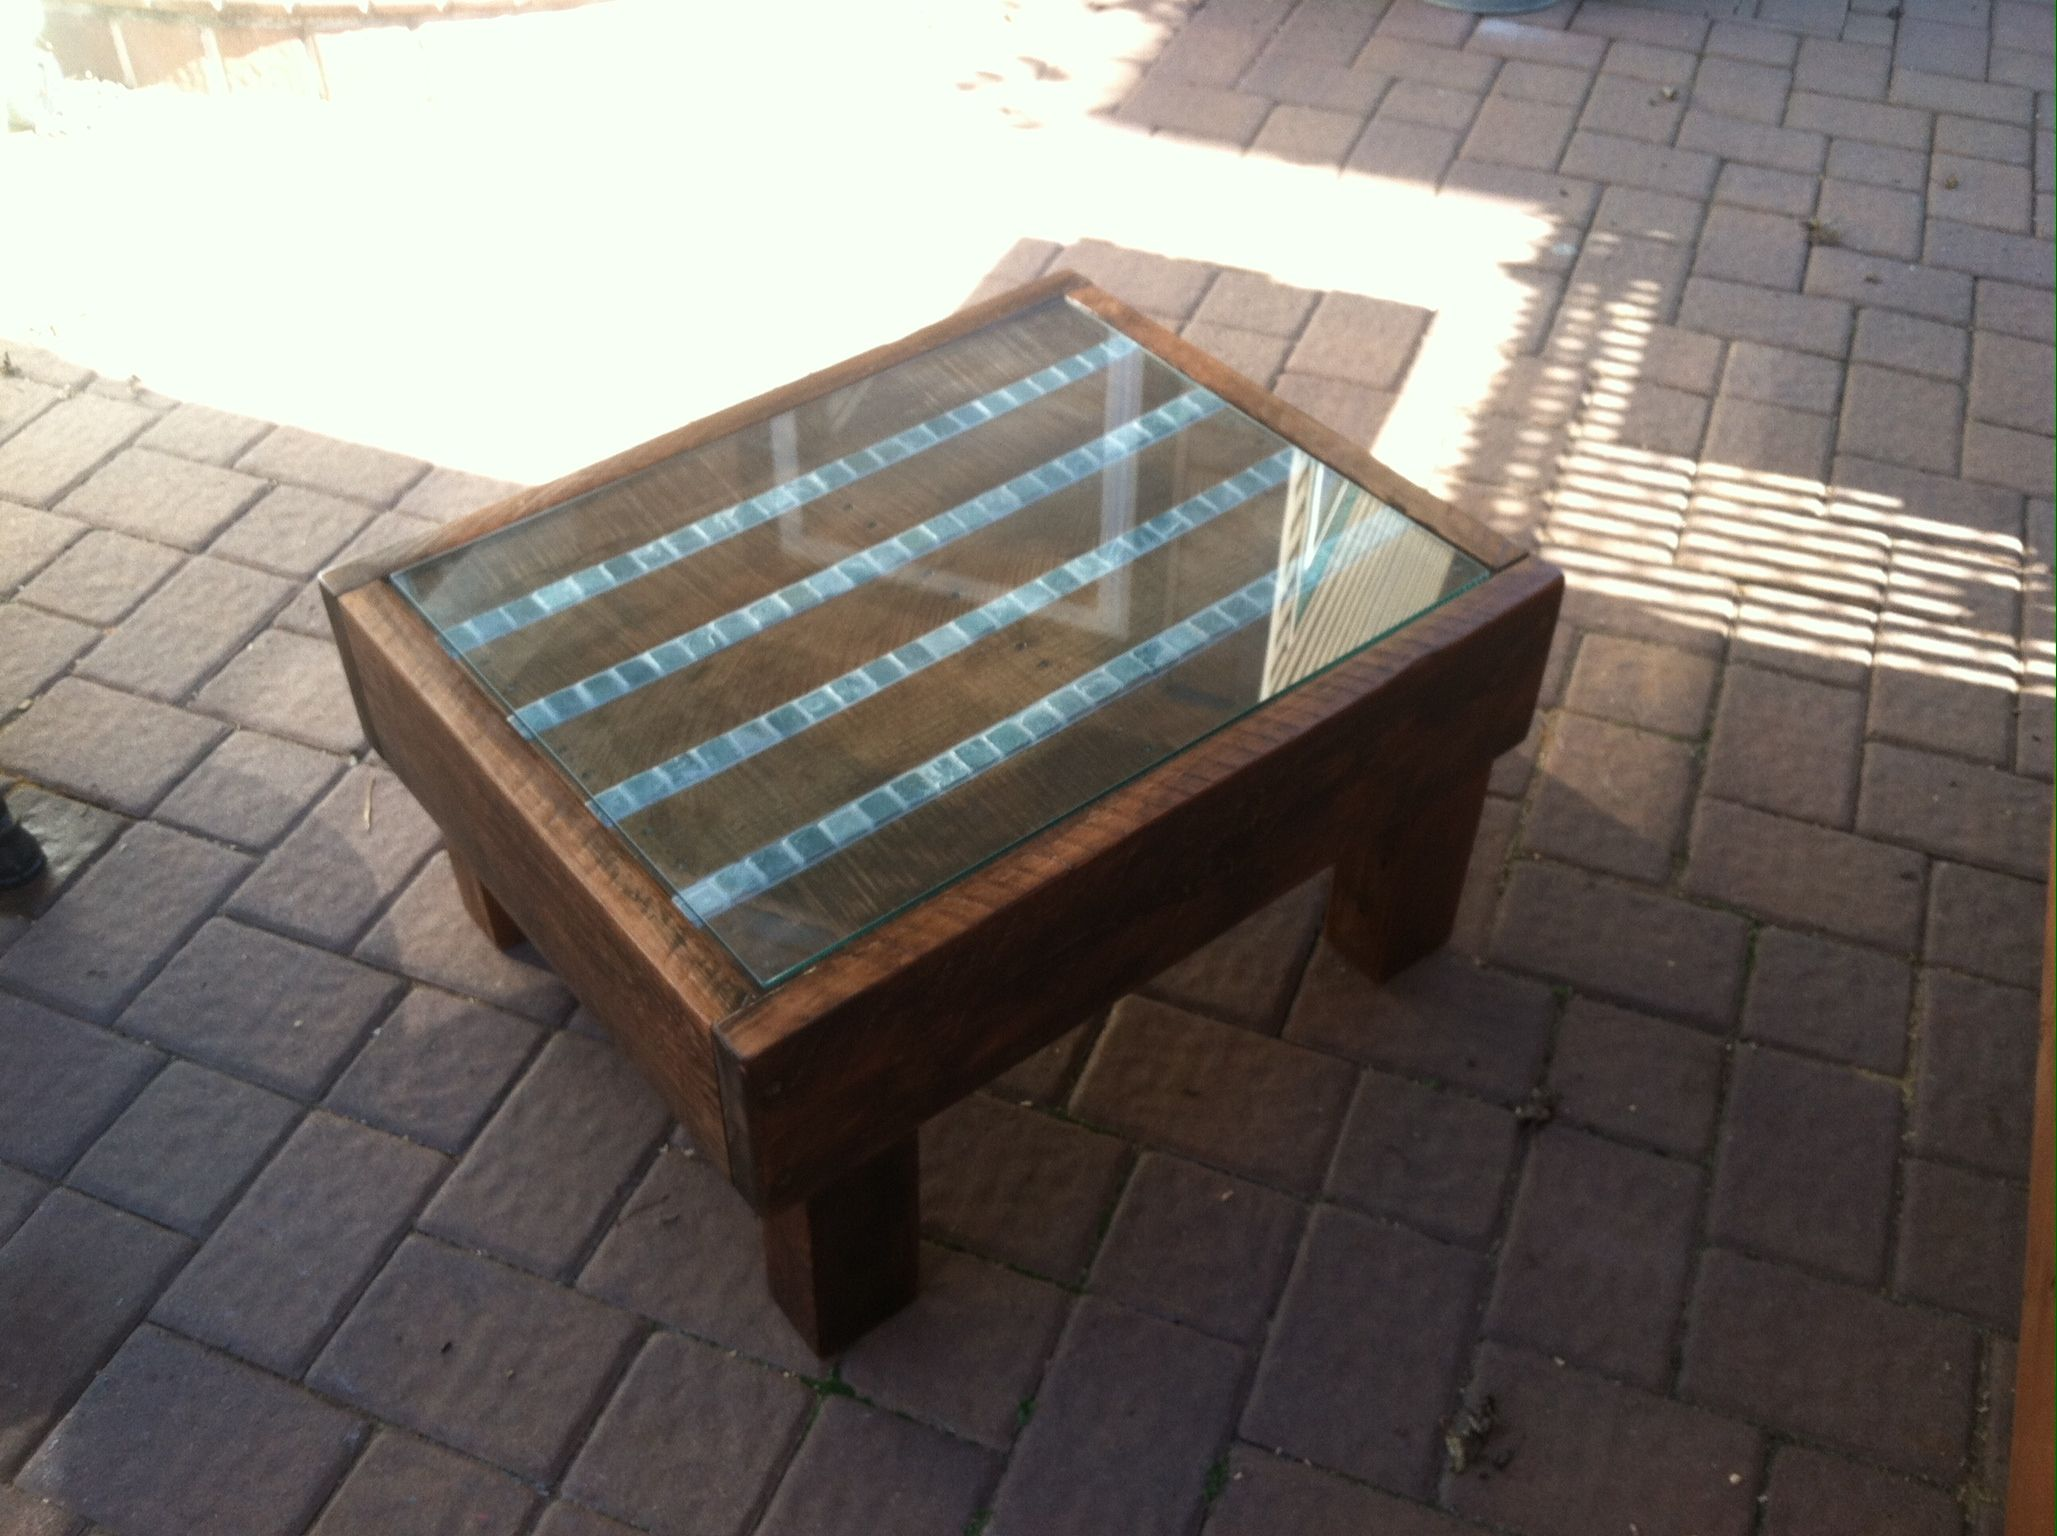 Coffee Table Made From Scaffolding And Pallet Wood Stained Varnished 1x1 Slate Tile Stripes